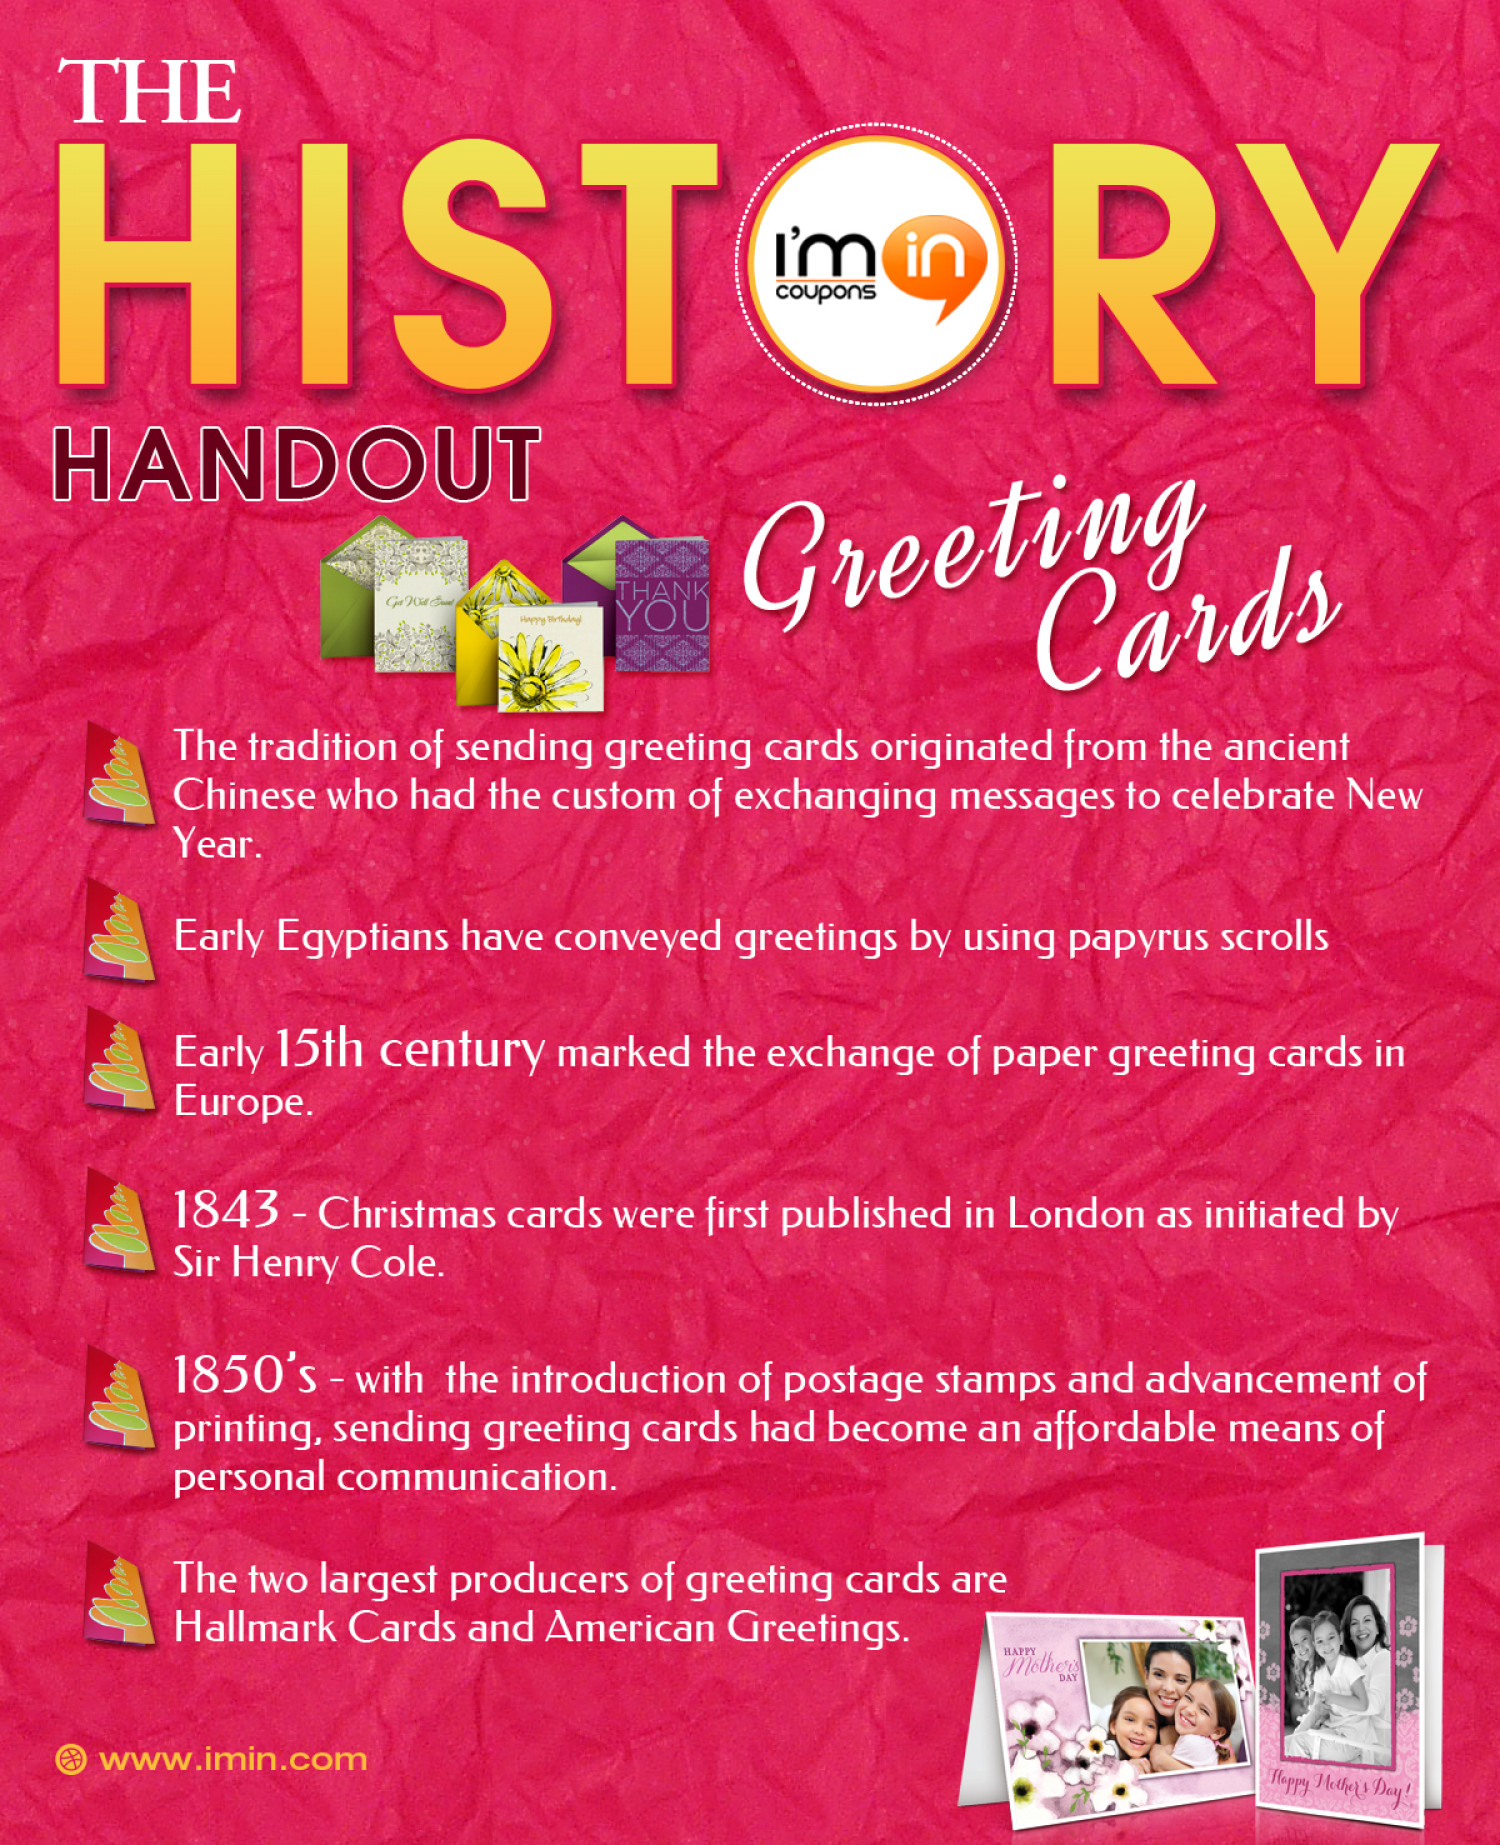 The history handout greeting cards visual the history handout greeting cards infographic kristyandbryce Choice Image